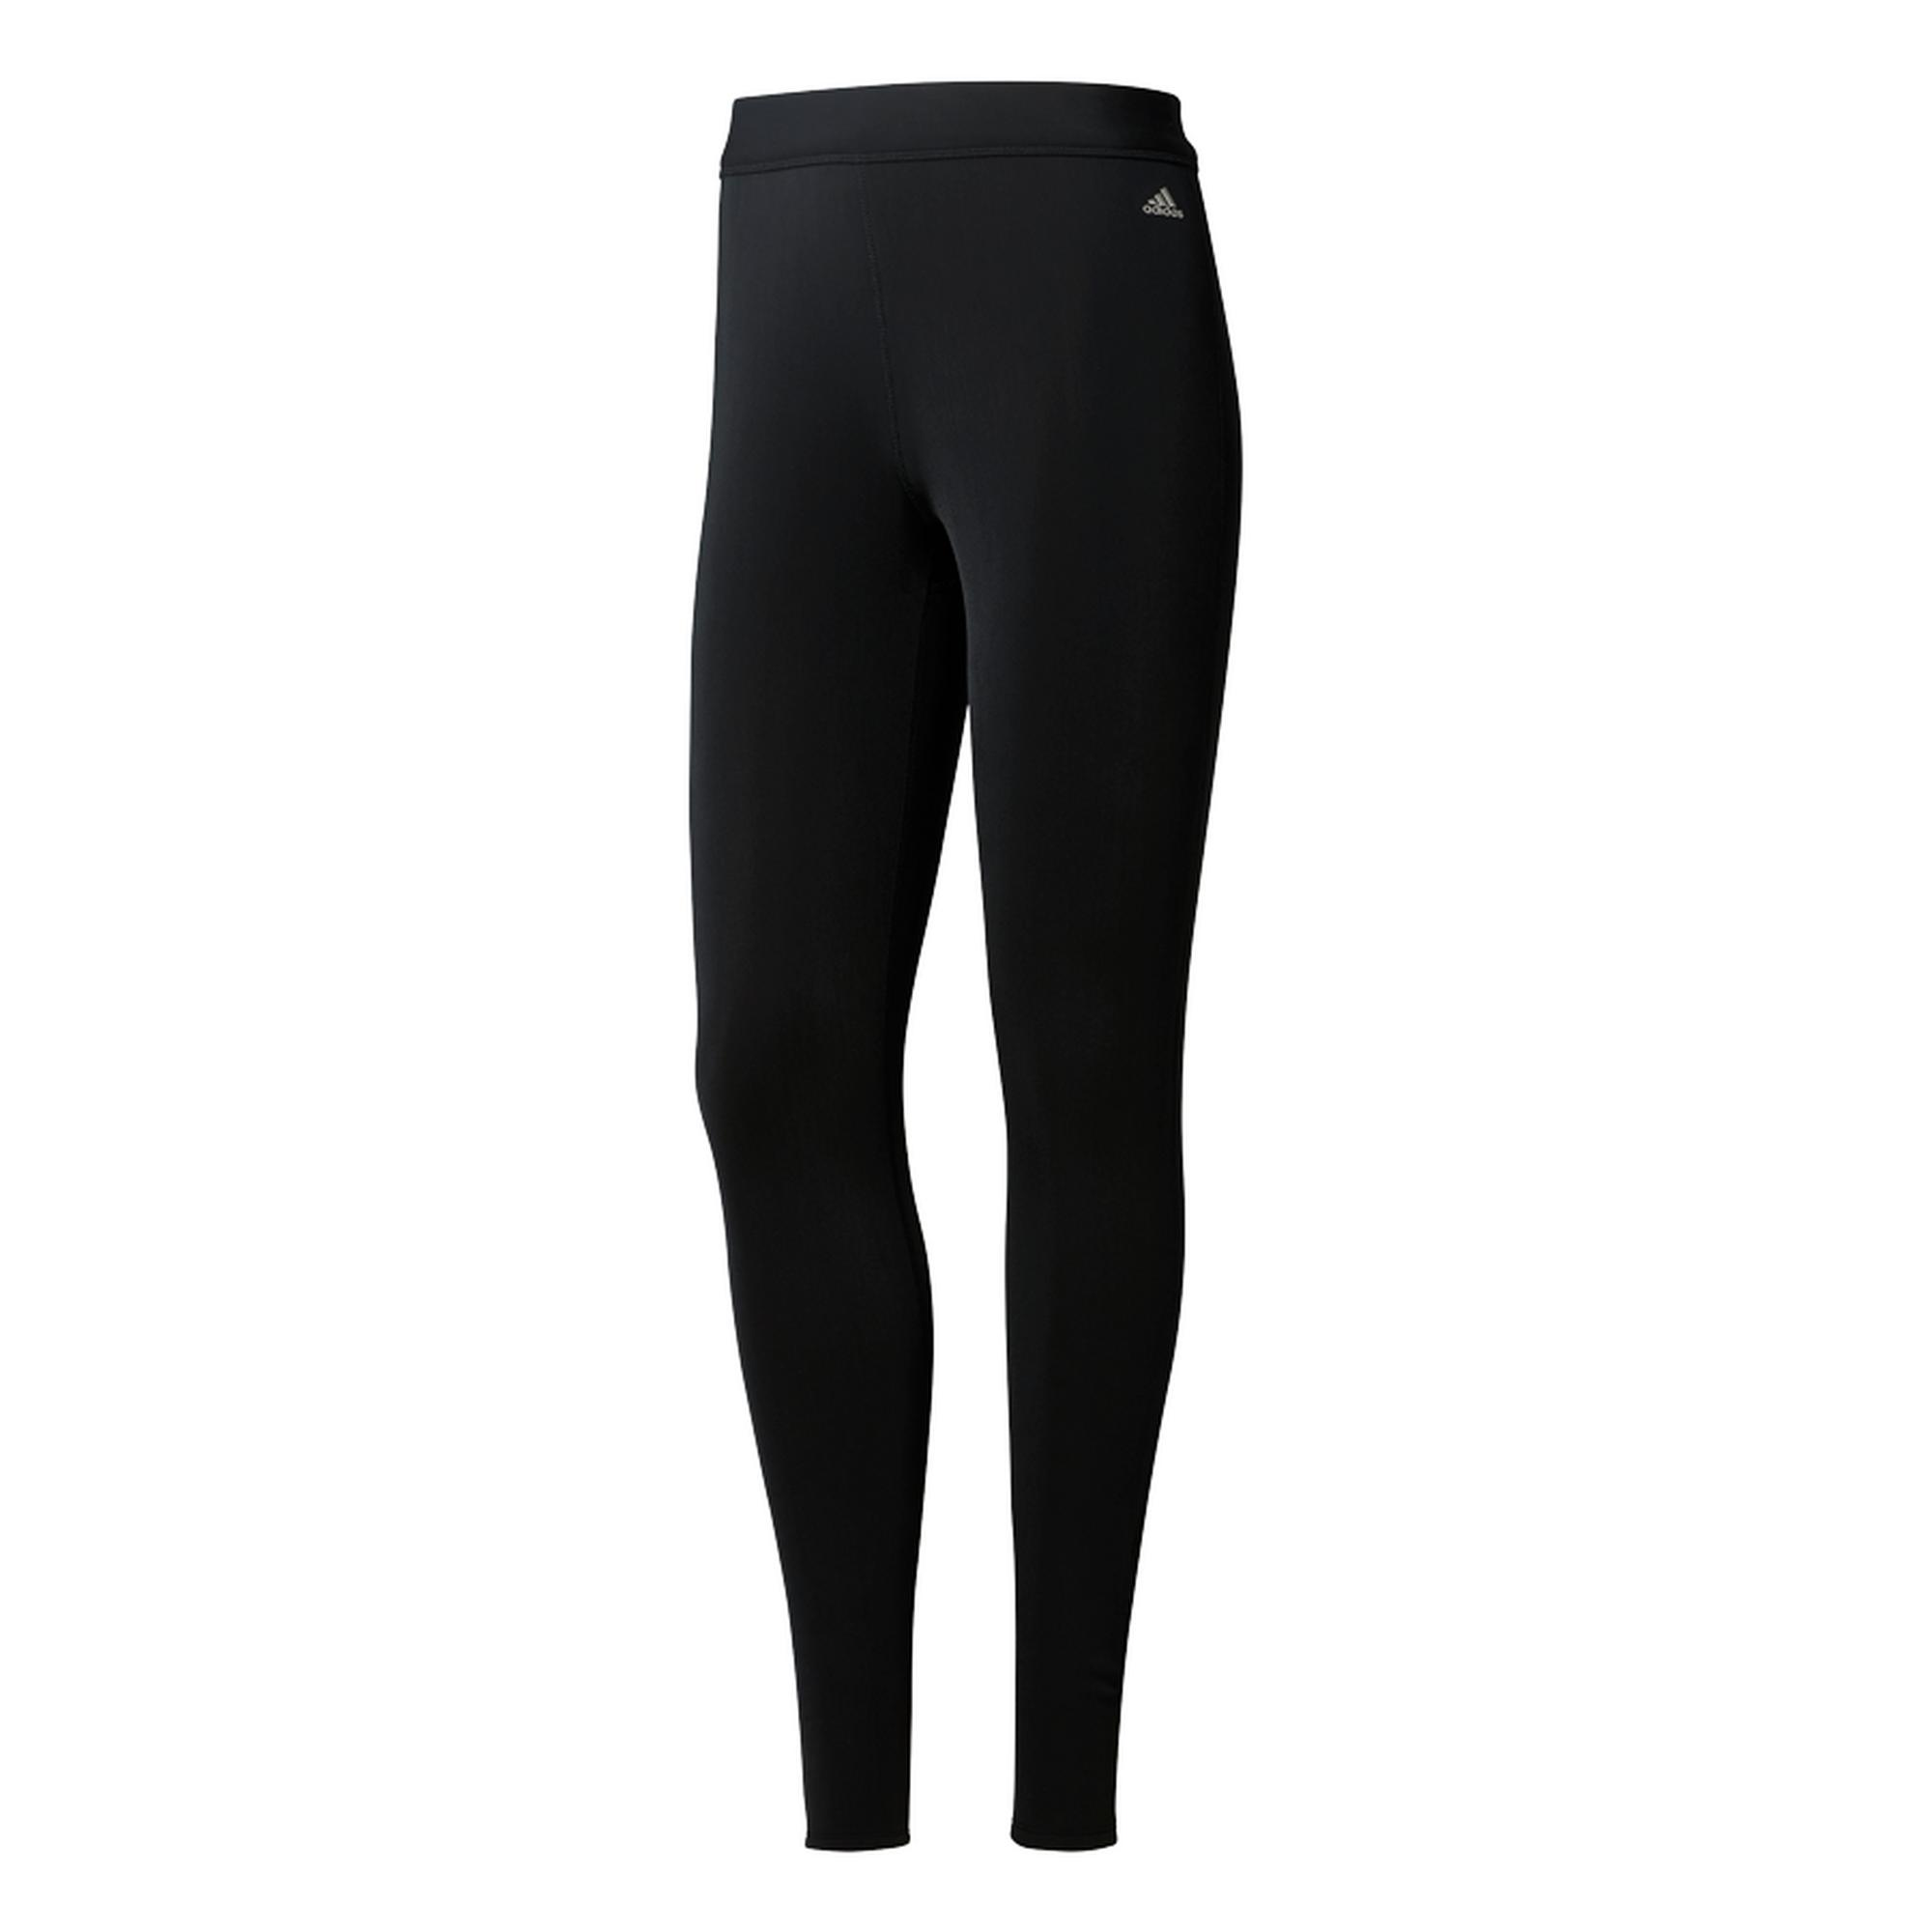 Women's Climaheat Warm Legging